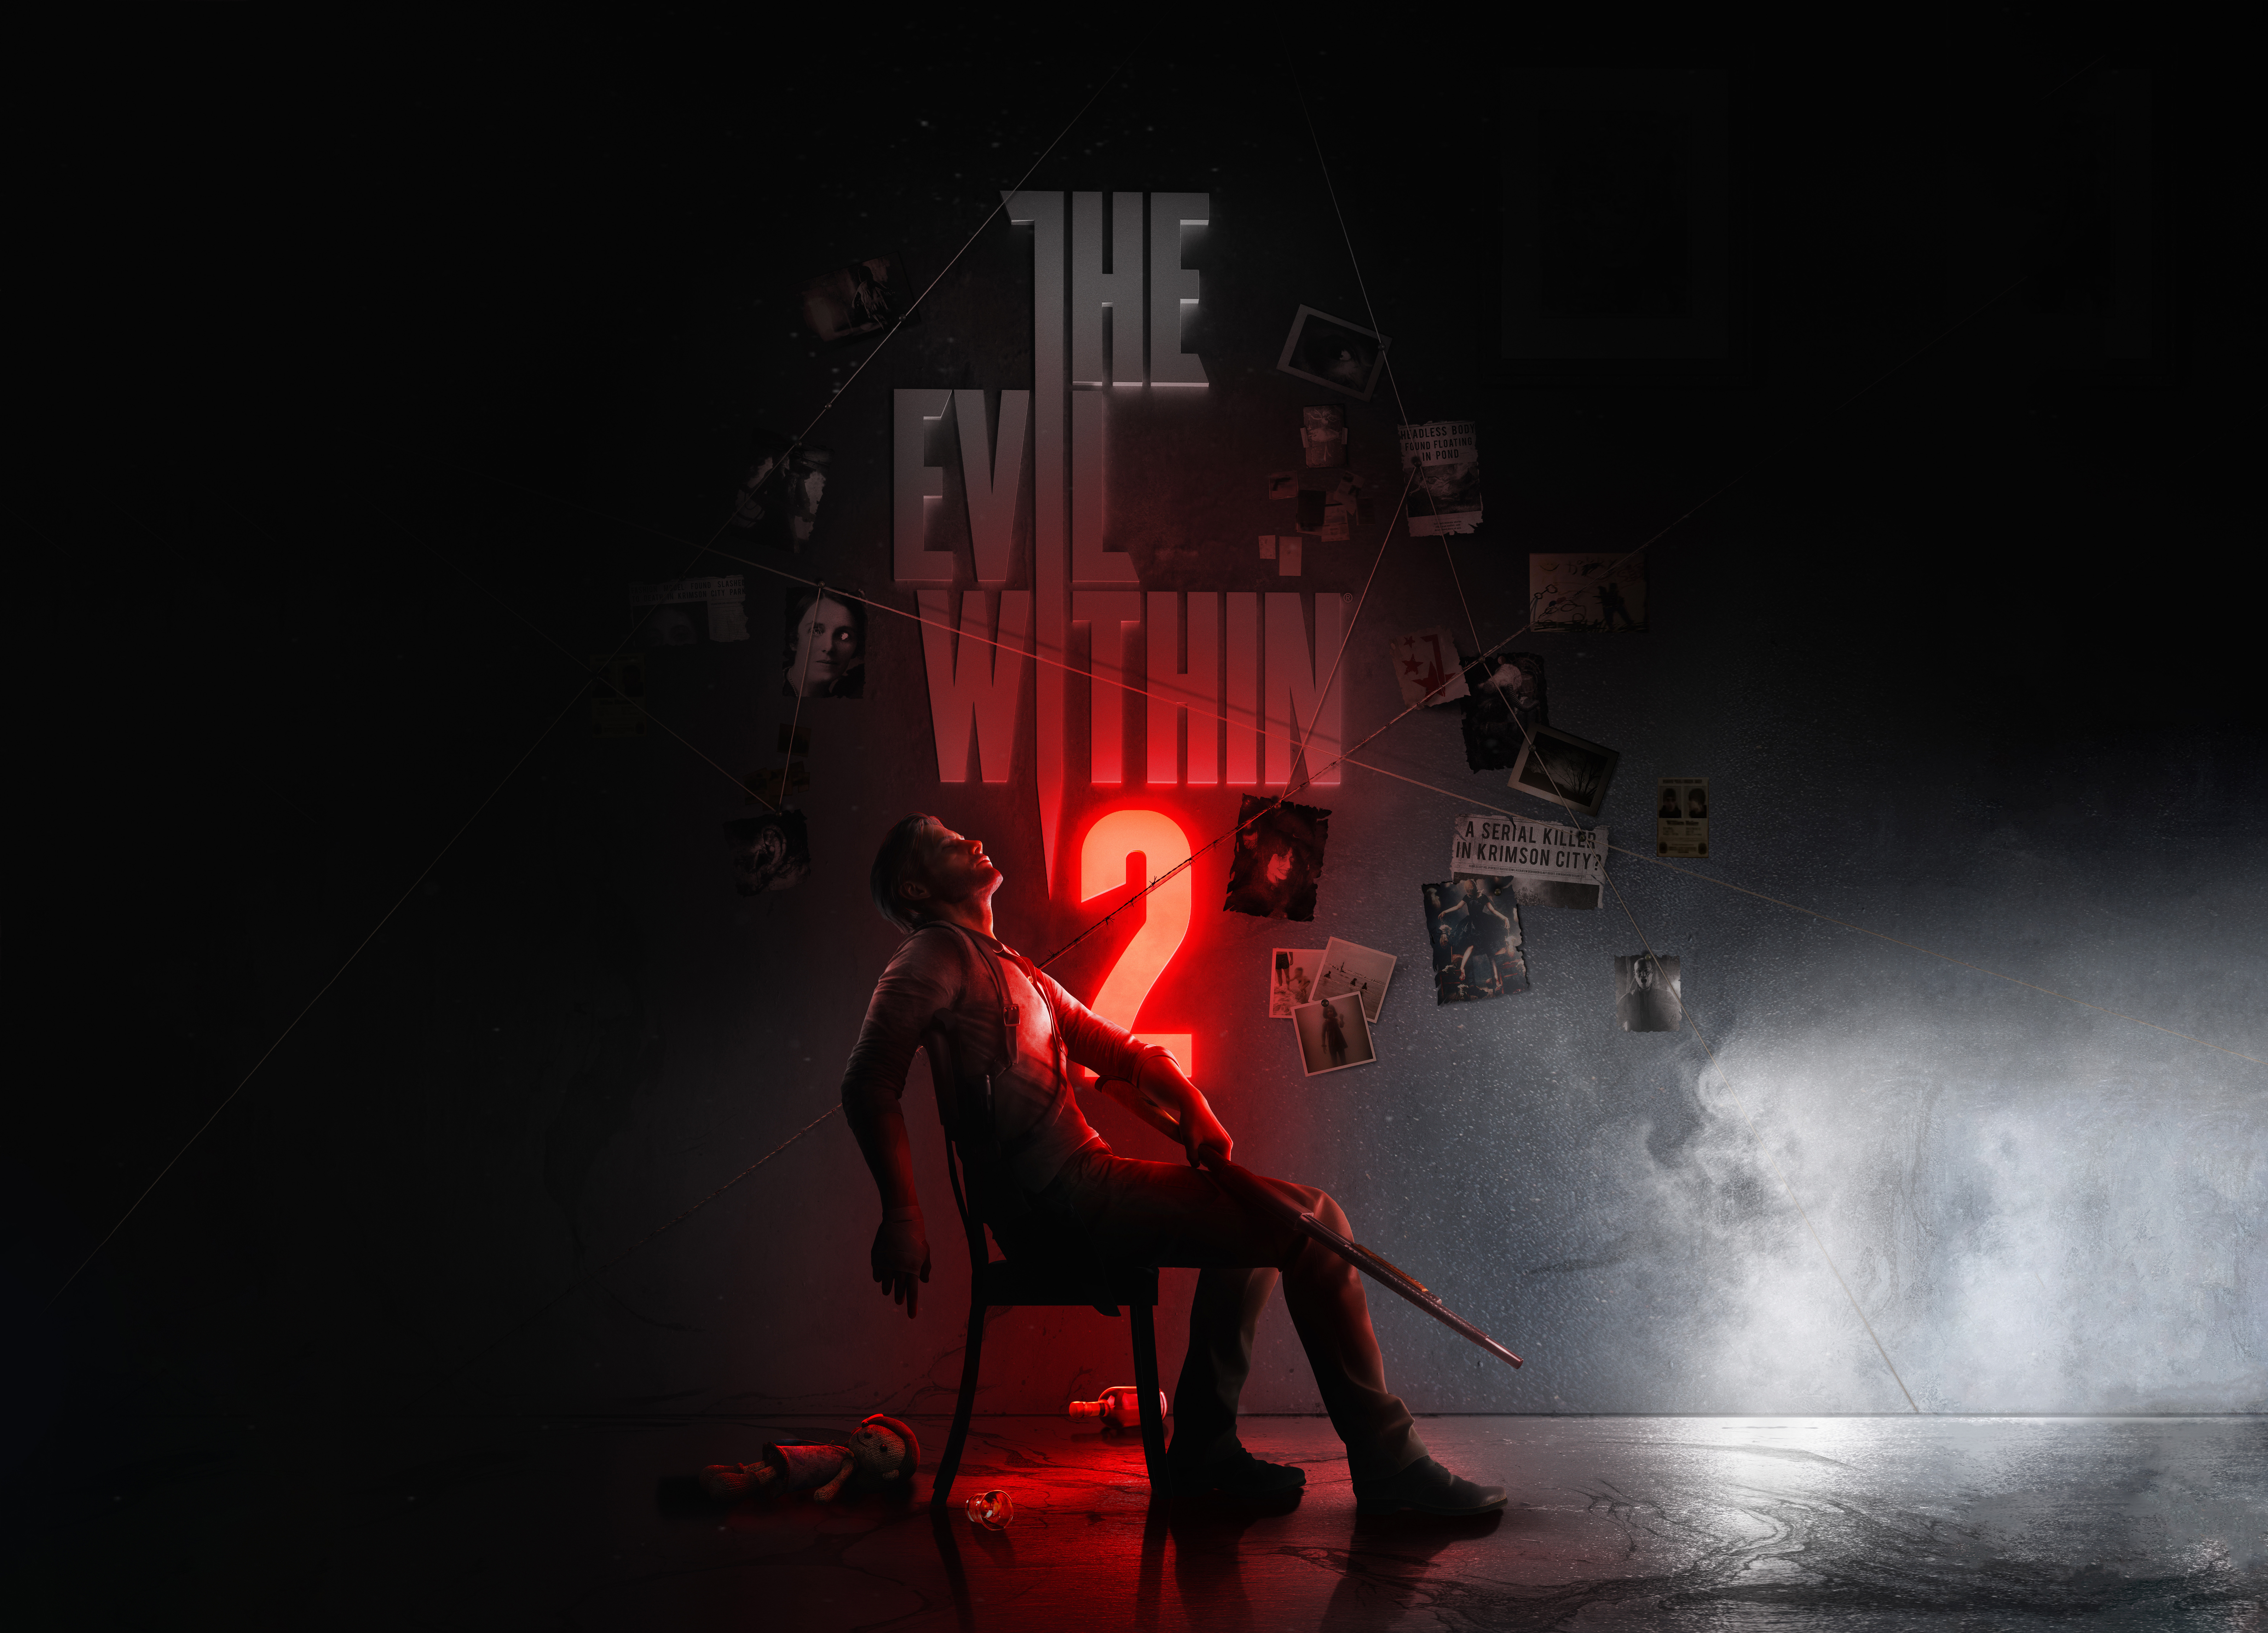 The Evil Within Wallpapers Or Desktop Backgrounds: The Evil Within 2 8k, HD Games, 4k Wallpapers, Images